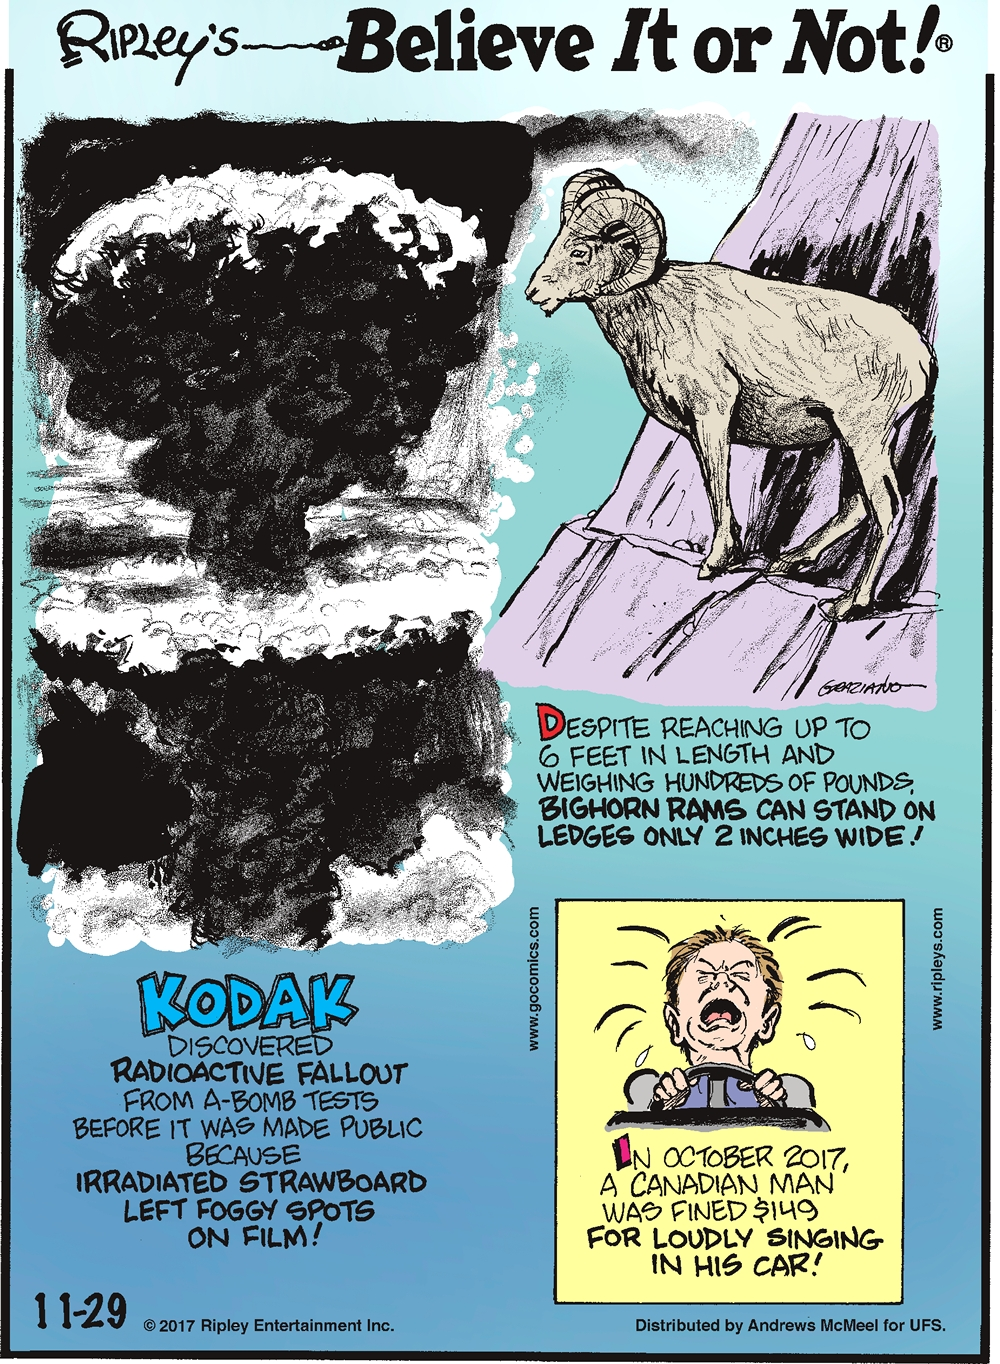 Despite reaching up to 6 feet in length and weighing hundreds of pounds, bighorn rams can stand on ledges only 2 inches wide!-------------------- Kodak discovered radioactive fallout from a-bomb tests before it was made public because irradiated strawboard left foggy spots on film!-------------------- In October 2017, a Canadian man was fined $149 for loudly singing in his car!